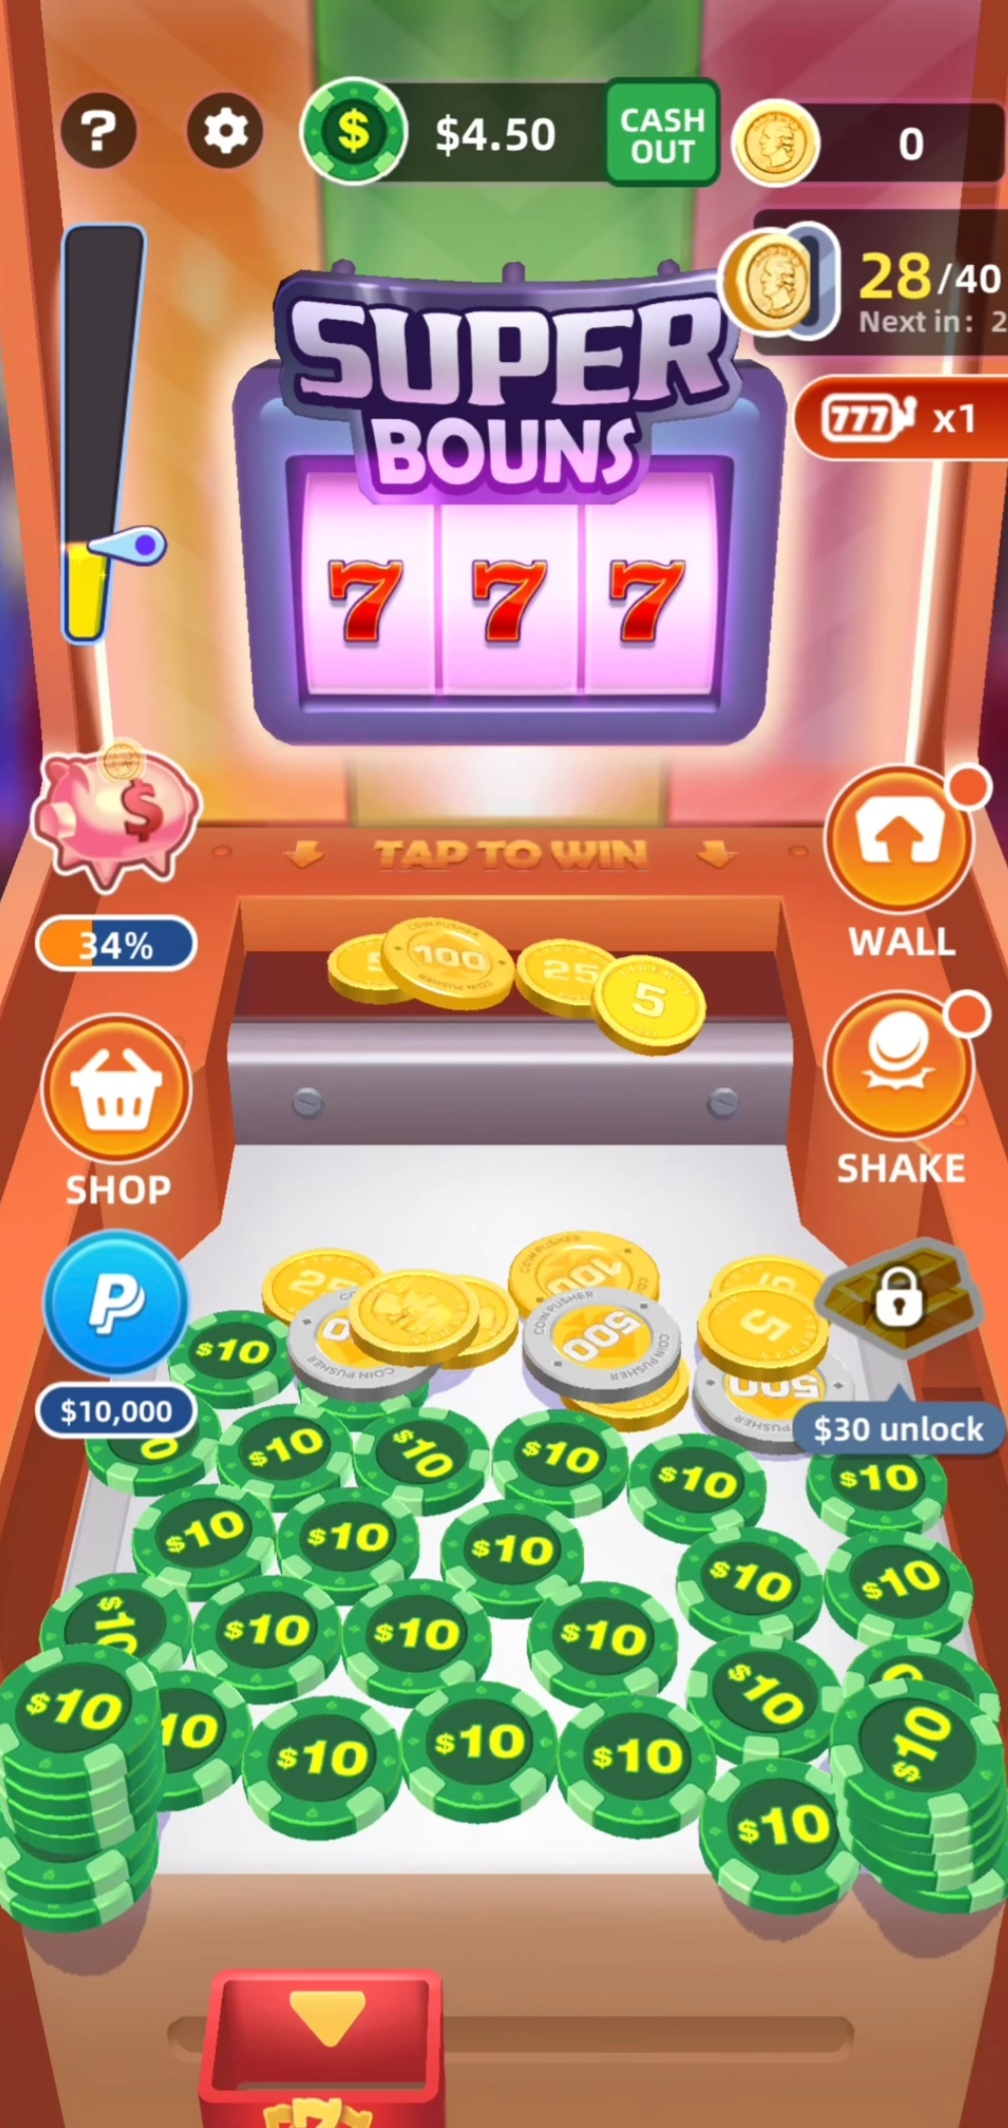 Lucky Chip Spin gameplay